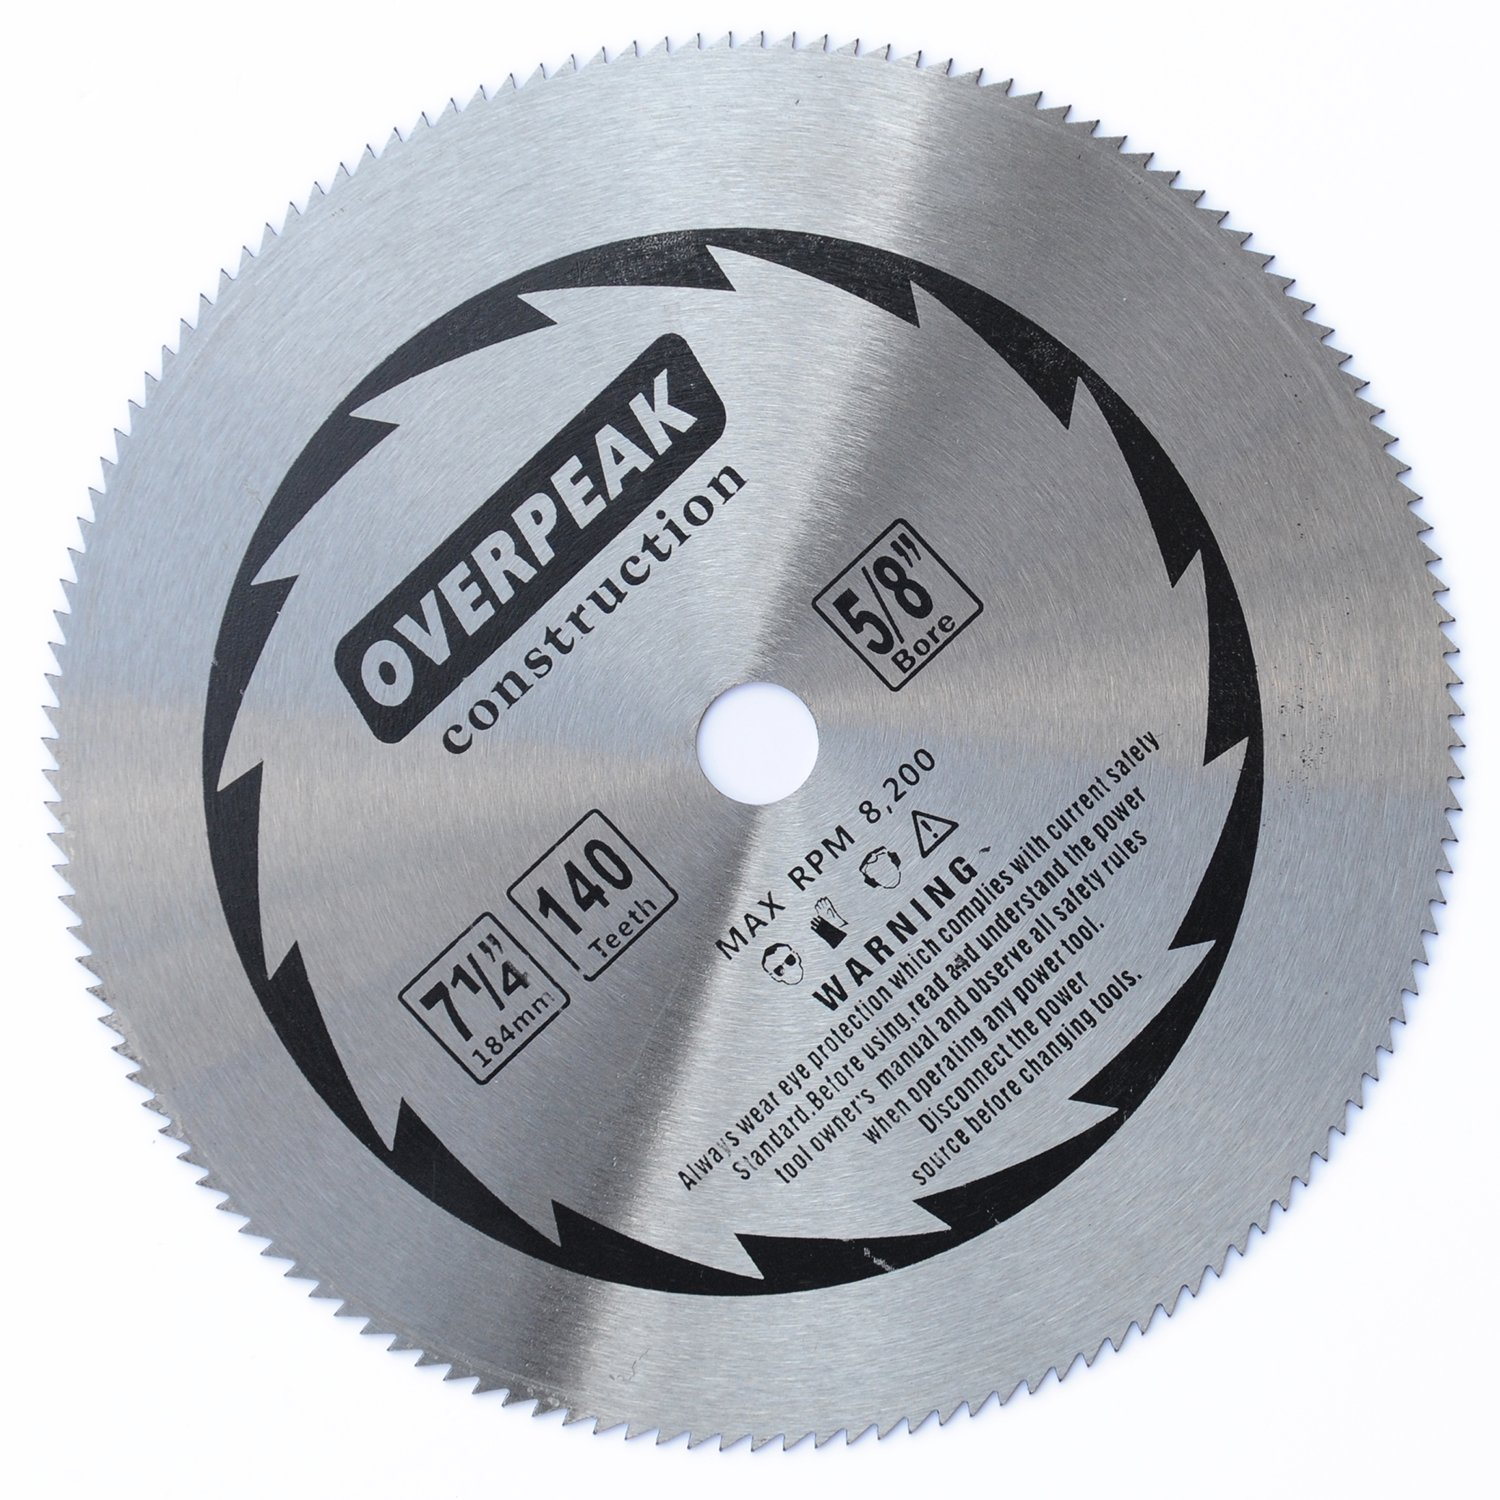 Overpeak 7 14 inch 140 tooth without carbide tipped saw blade overpeak 7 14 inch 140 tooth without carbide tipped saw blade specially for fine finishing cut of hard and thick wood amazon greentooth Image collections